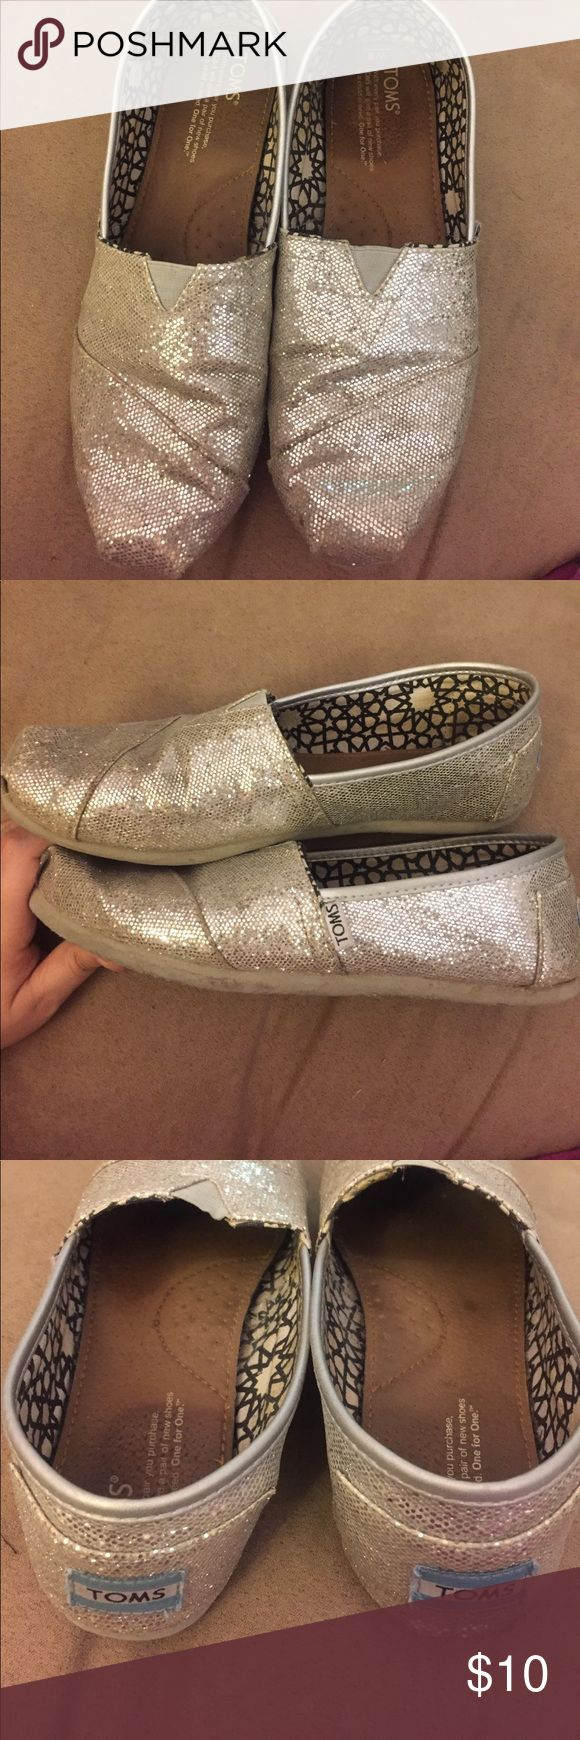 Toms glitter flats Toms glitter slide on flats in good condition. Still super sparkly. Photos show wear on sole. TOMS Shoes Flats & Loafers